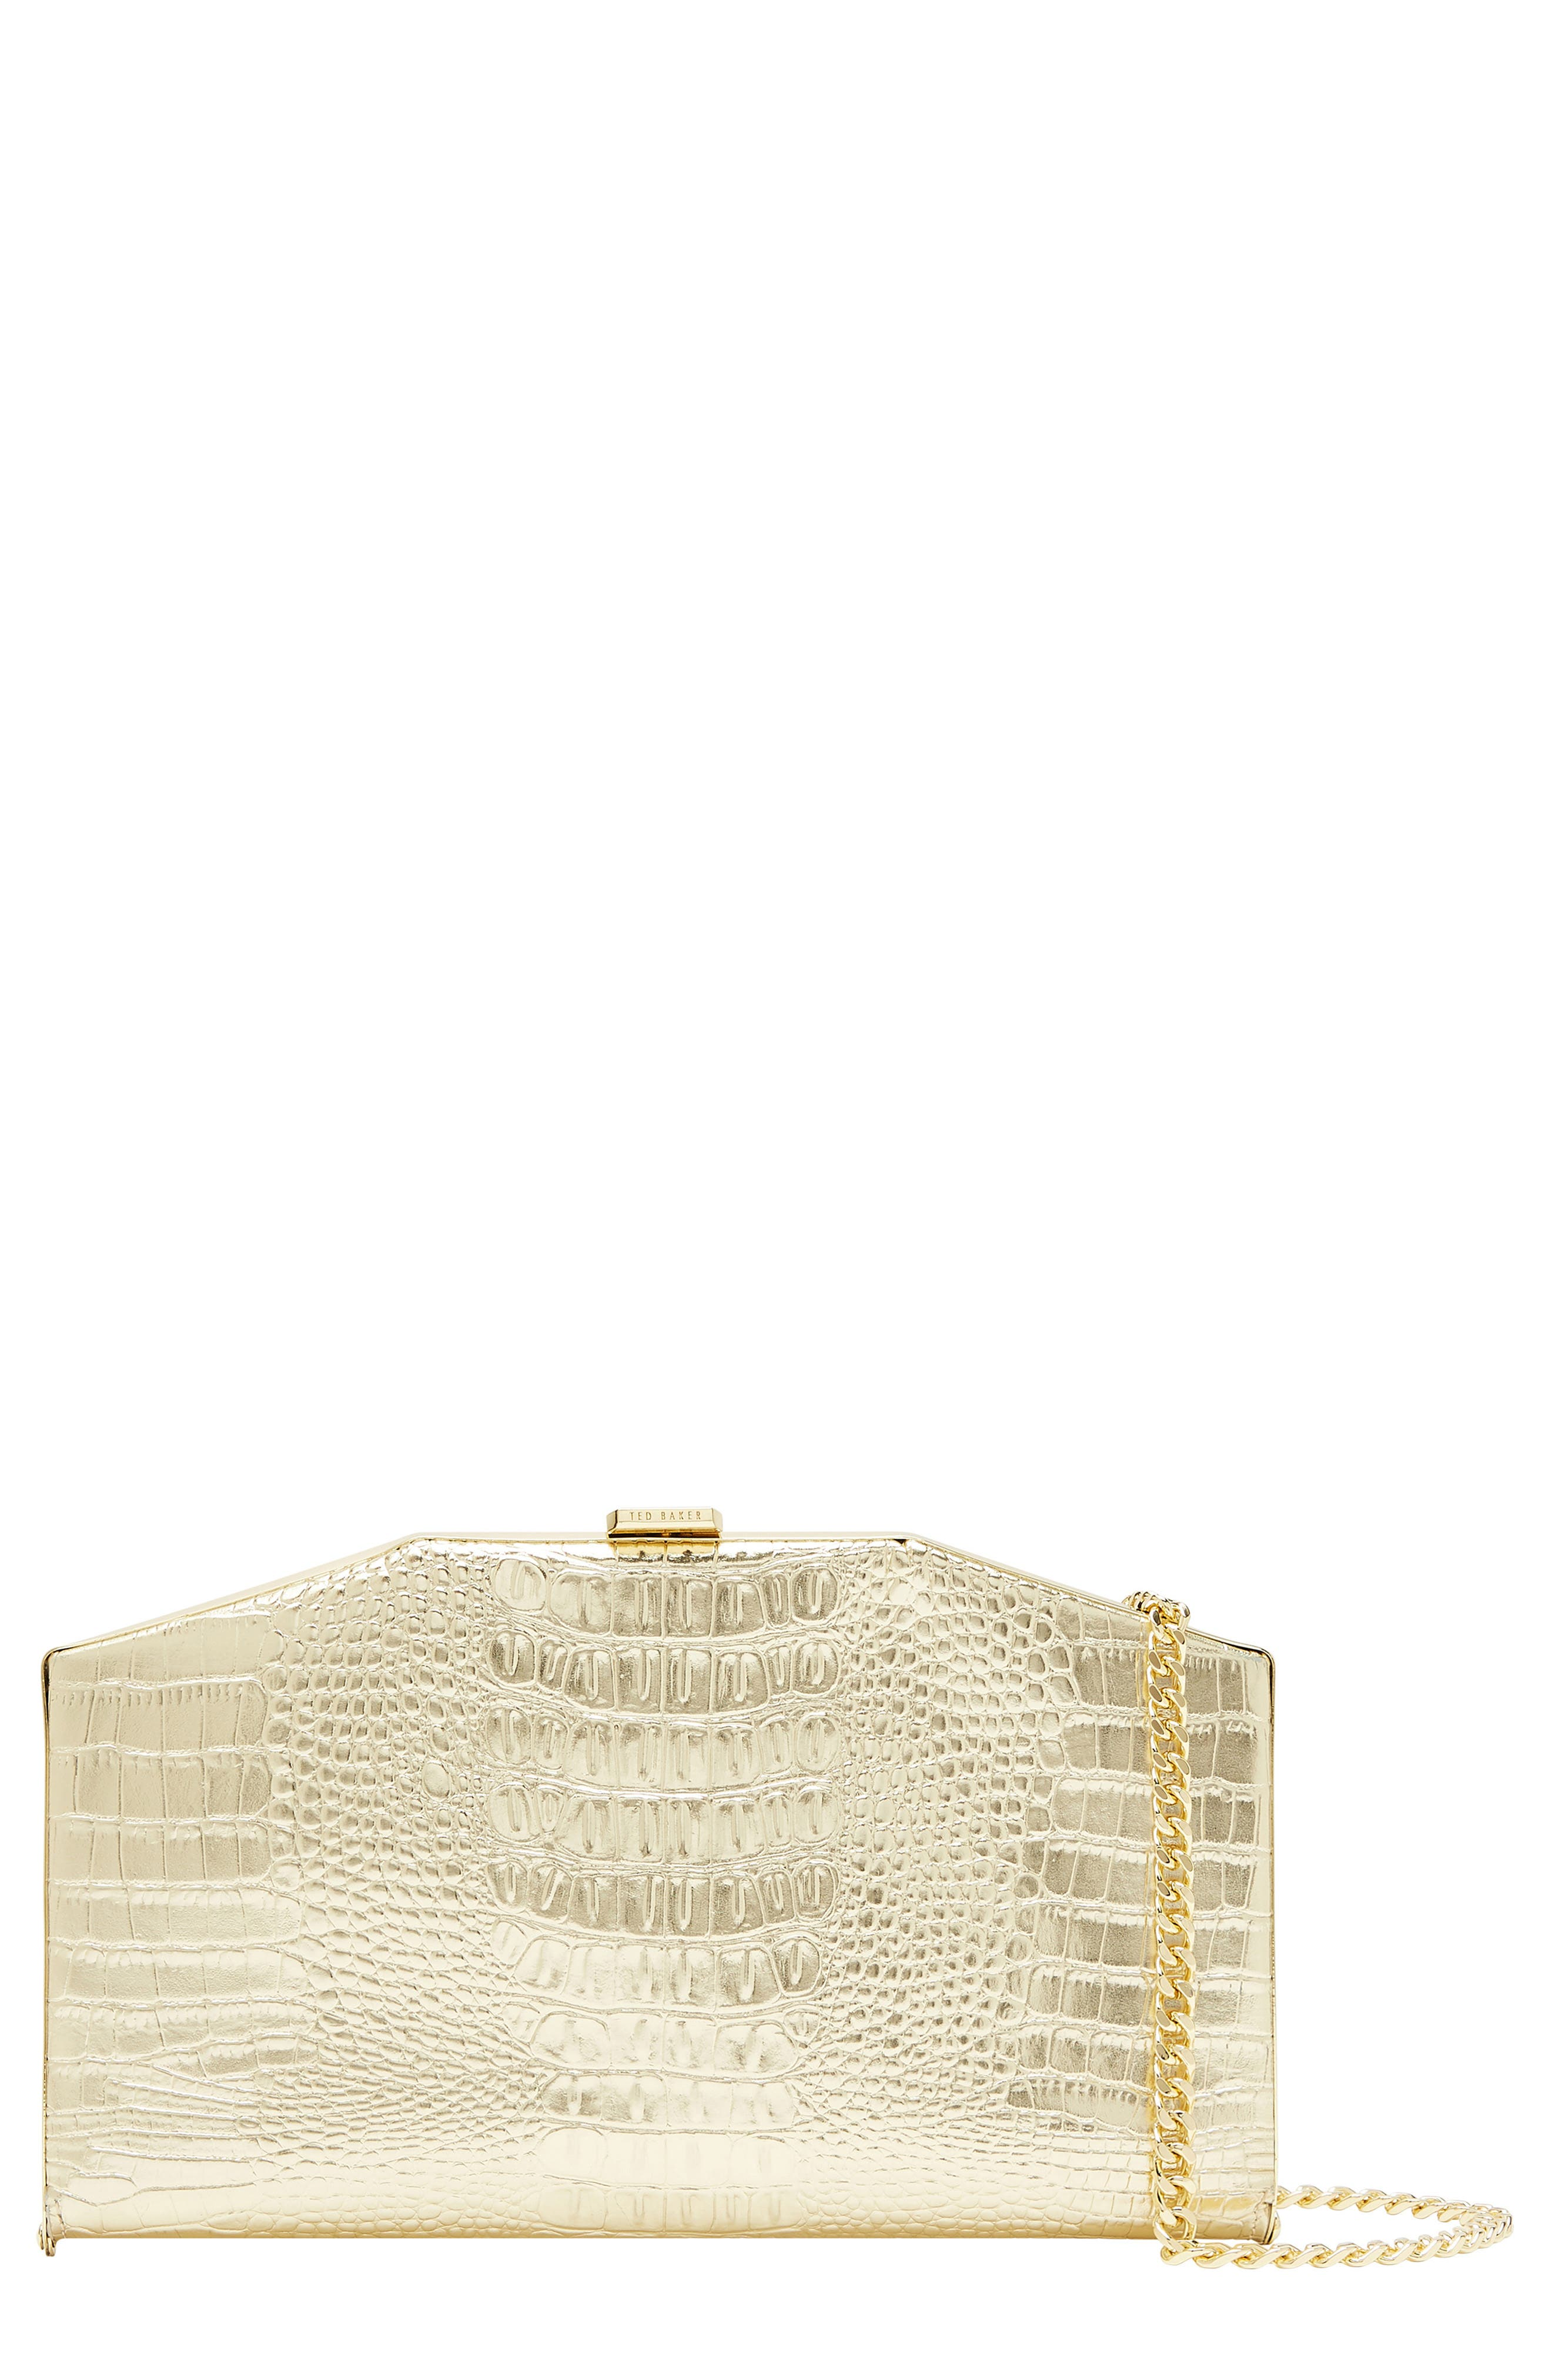 This slimline clutch is framed by golden metal and styled with crocodile embossing and a slinky chain to sling over your shoulder. Style Name: Ted Baker London Unae Croc Embossed Leather Clutch. Style Number: 5997261. Available in stores.